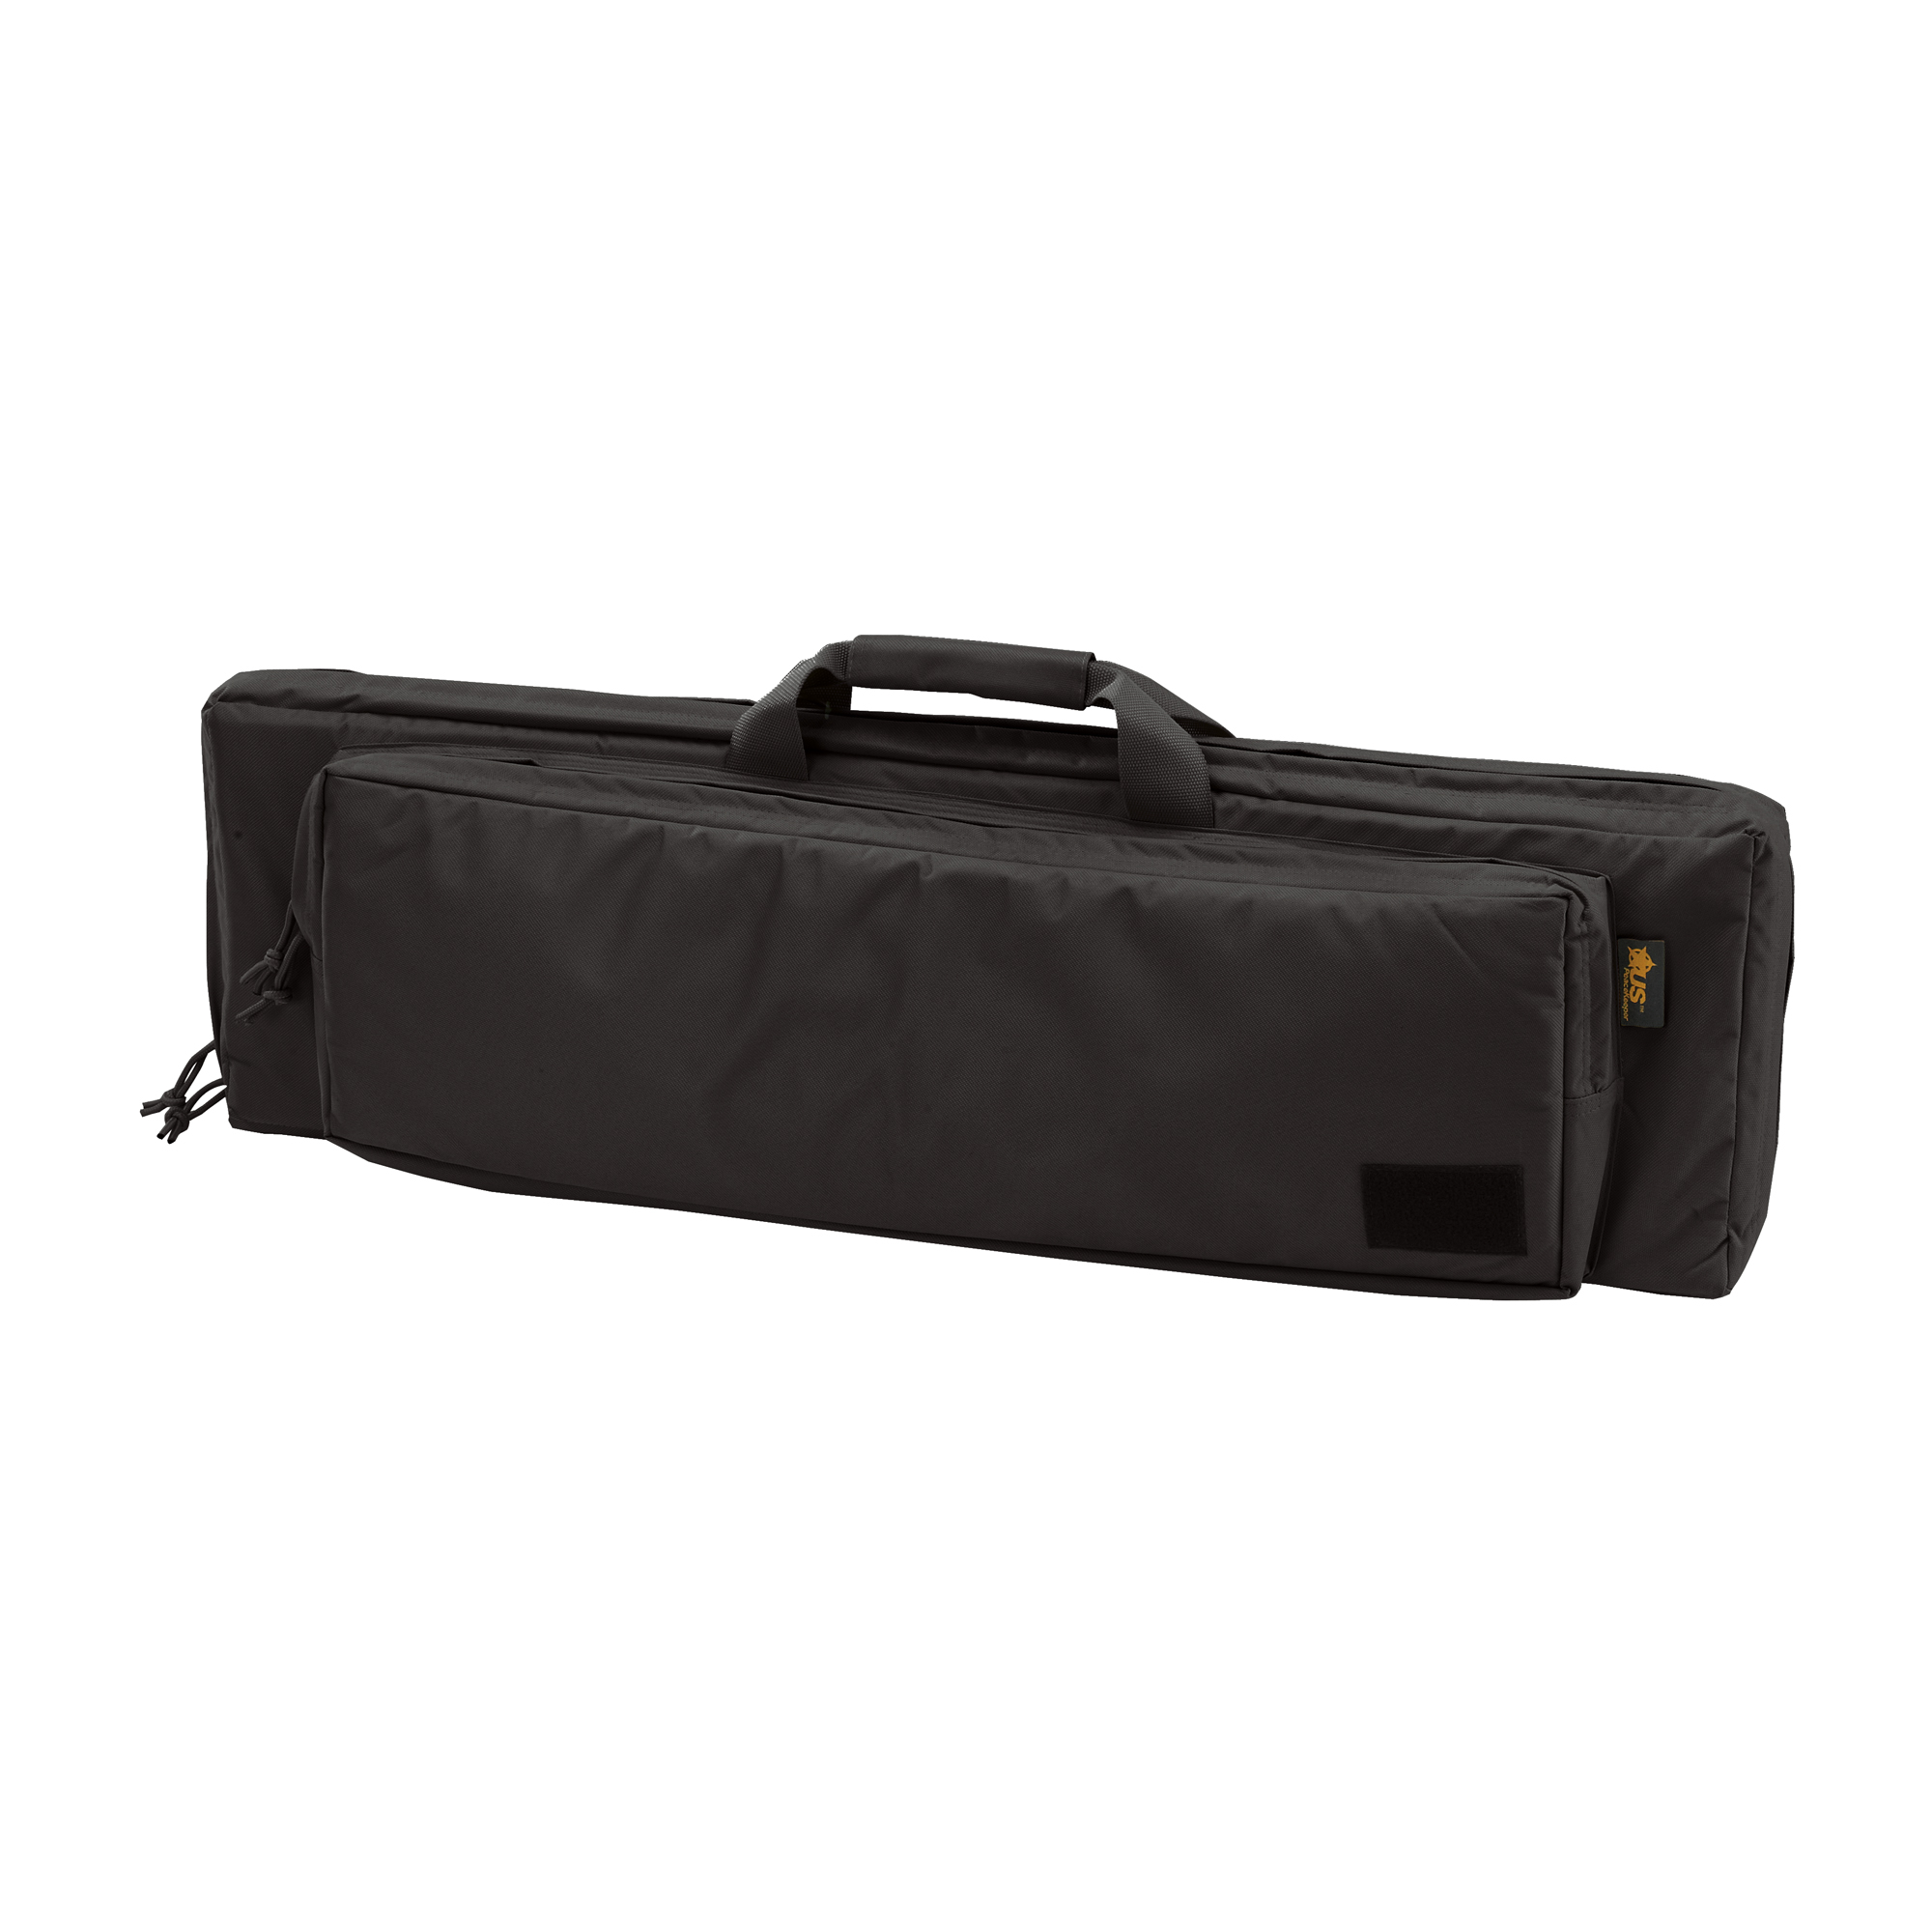 """Discreet and compact in style"""" but heavily padded and double-stitched to keep your rifle and gear protected and secure. Front pocket is a perfect place for a backup handgun and spare ammo. Each case includes straps to secure the firearm via the internal webbing system and contains a detachable carry sling which doubles as strap for the detachable ammunition pouch which holds up to six (6) magazines."""